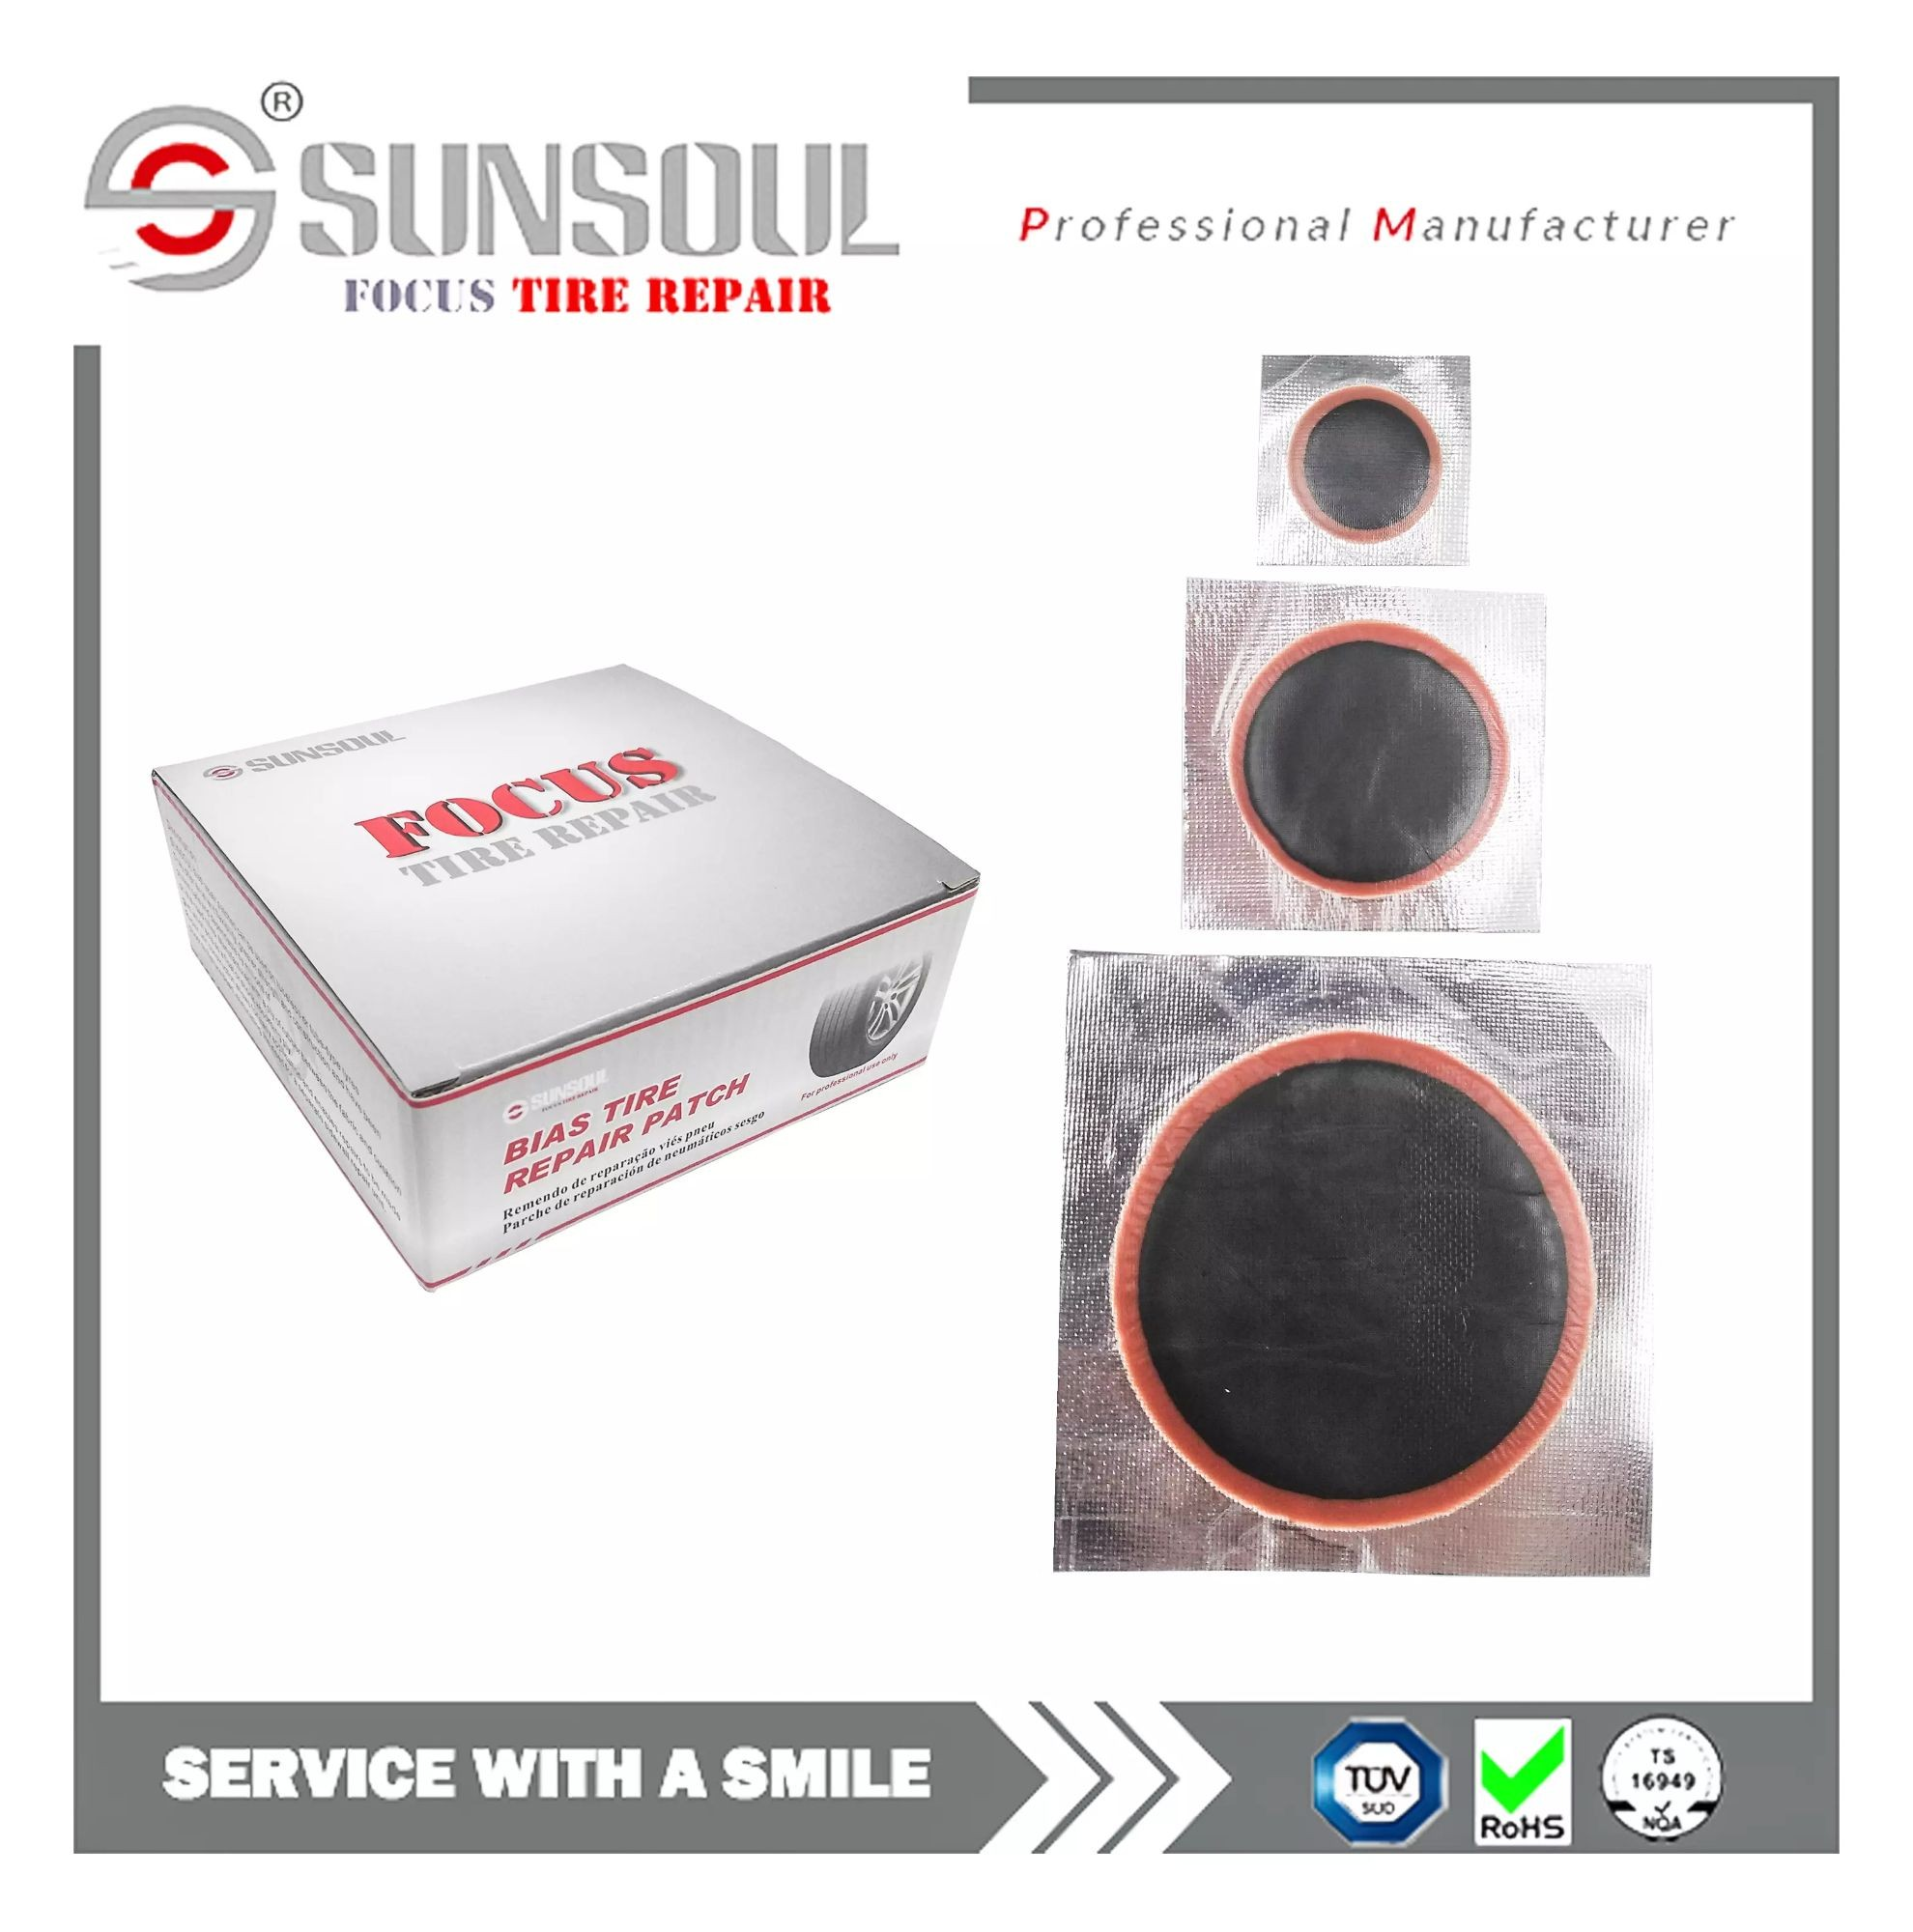 https://www.autosunsoul.com/upload/product/1598584728511858.jpg